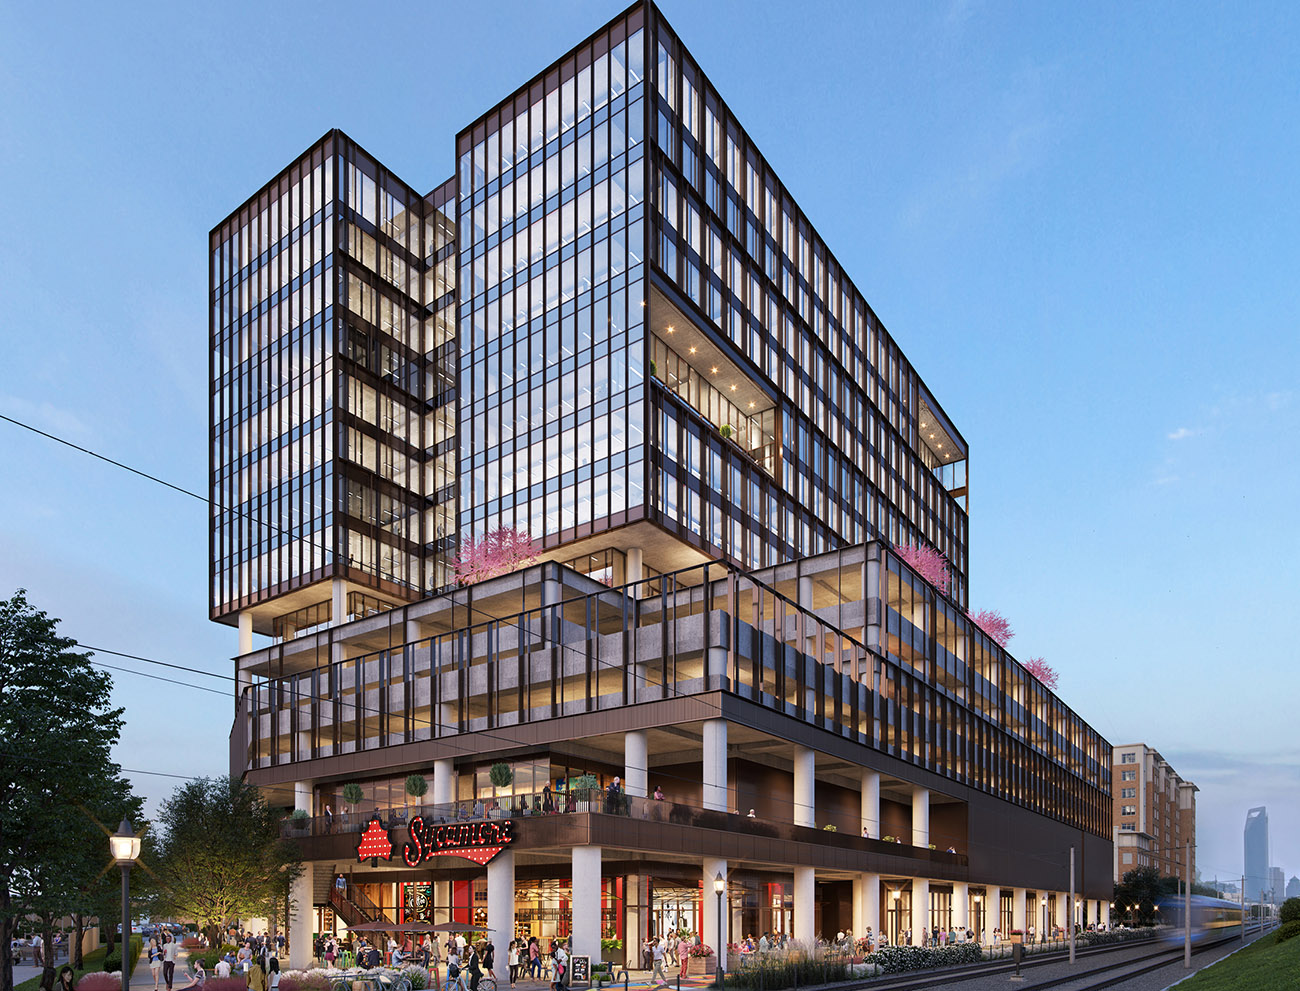 6 biggest developments underway shaping South End